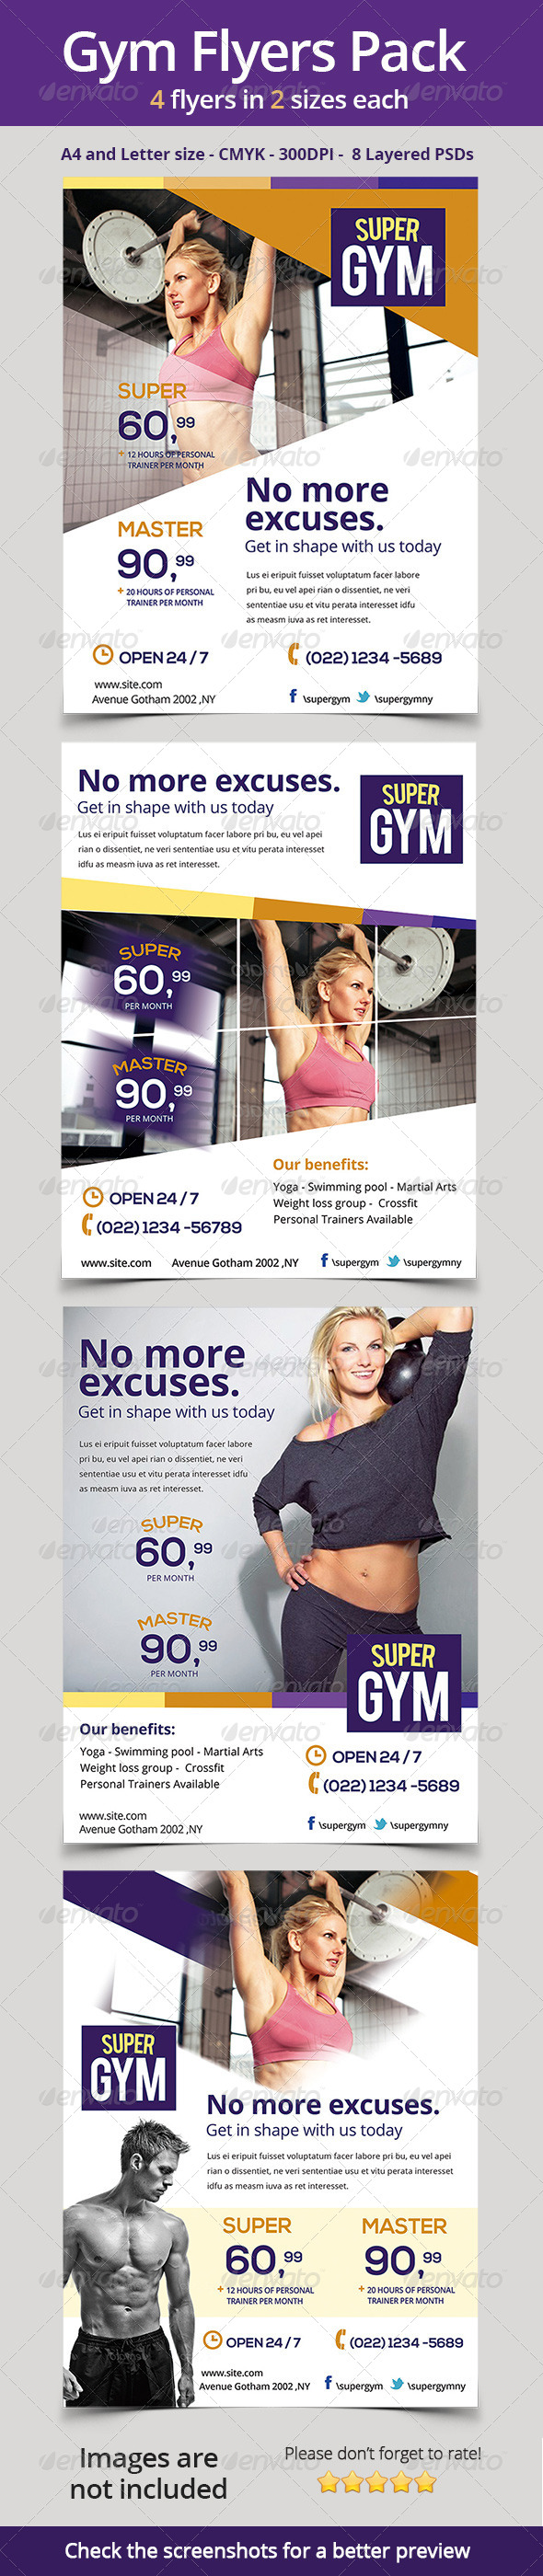 Gym / Fitness Flyers Pack